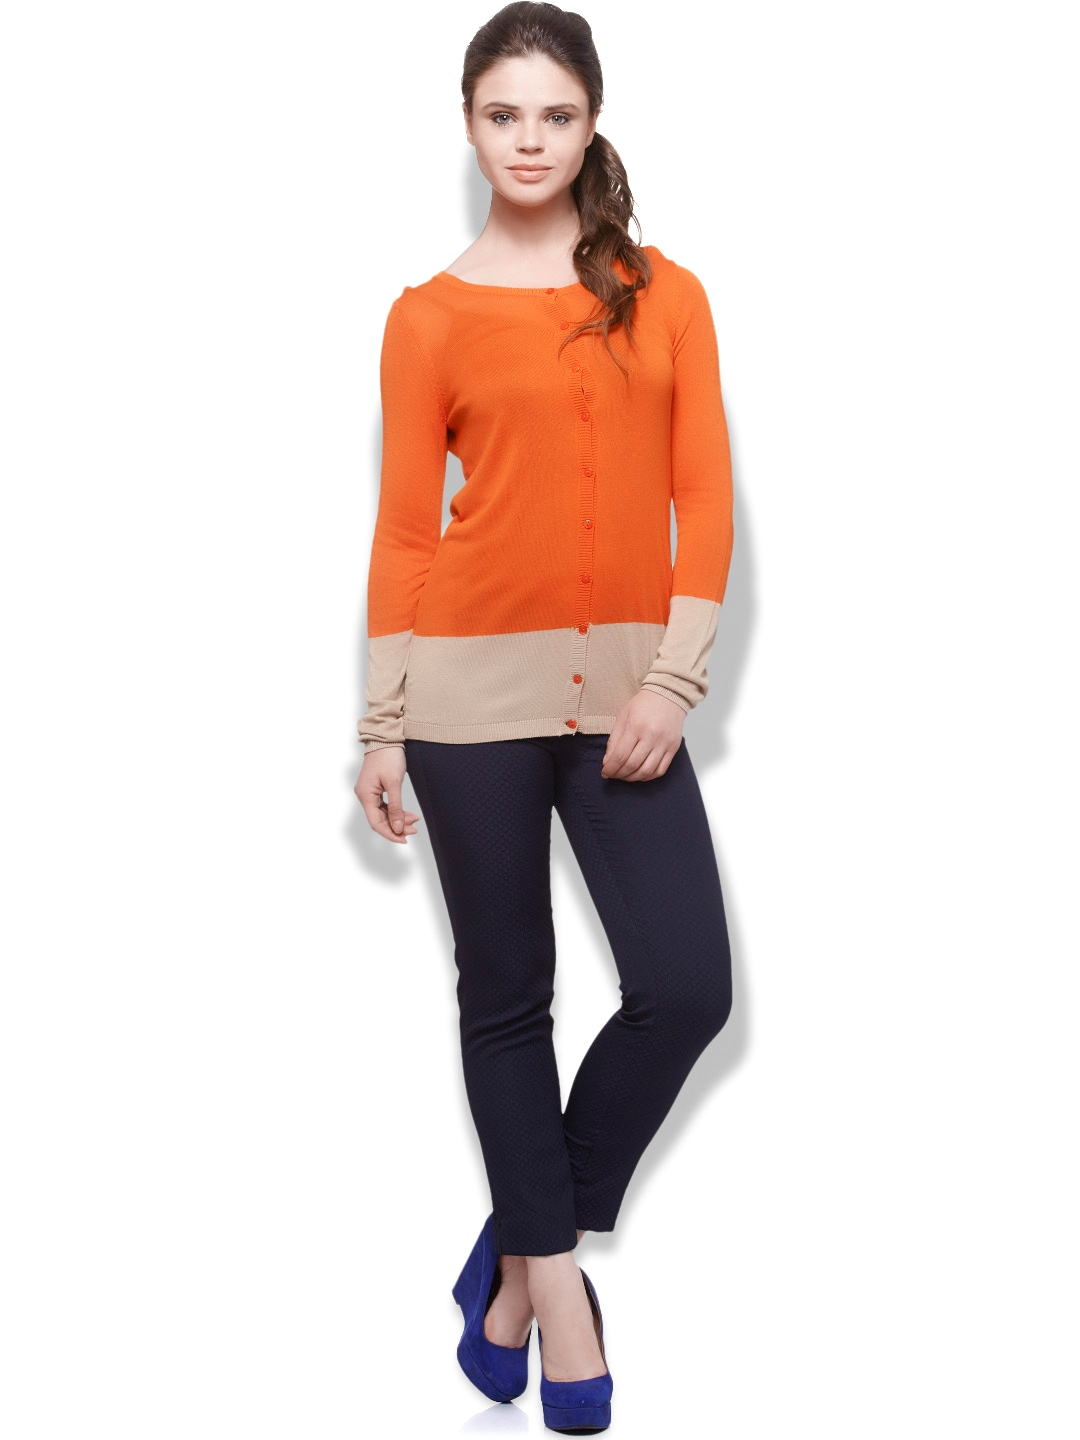 Clothing Women Clothing Sweaters United Colors of Benetton Sweaters